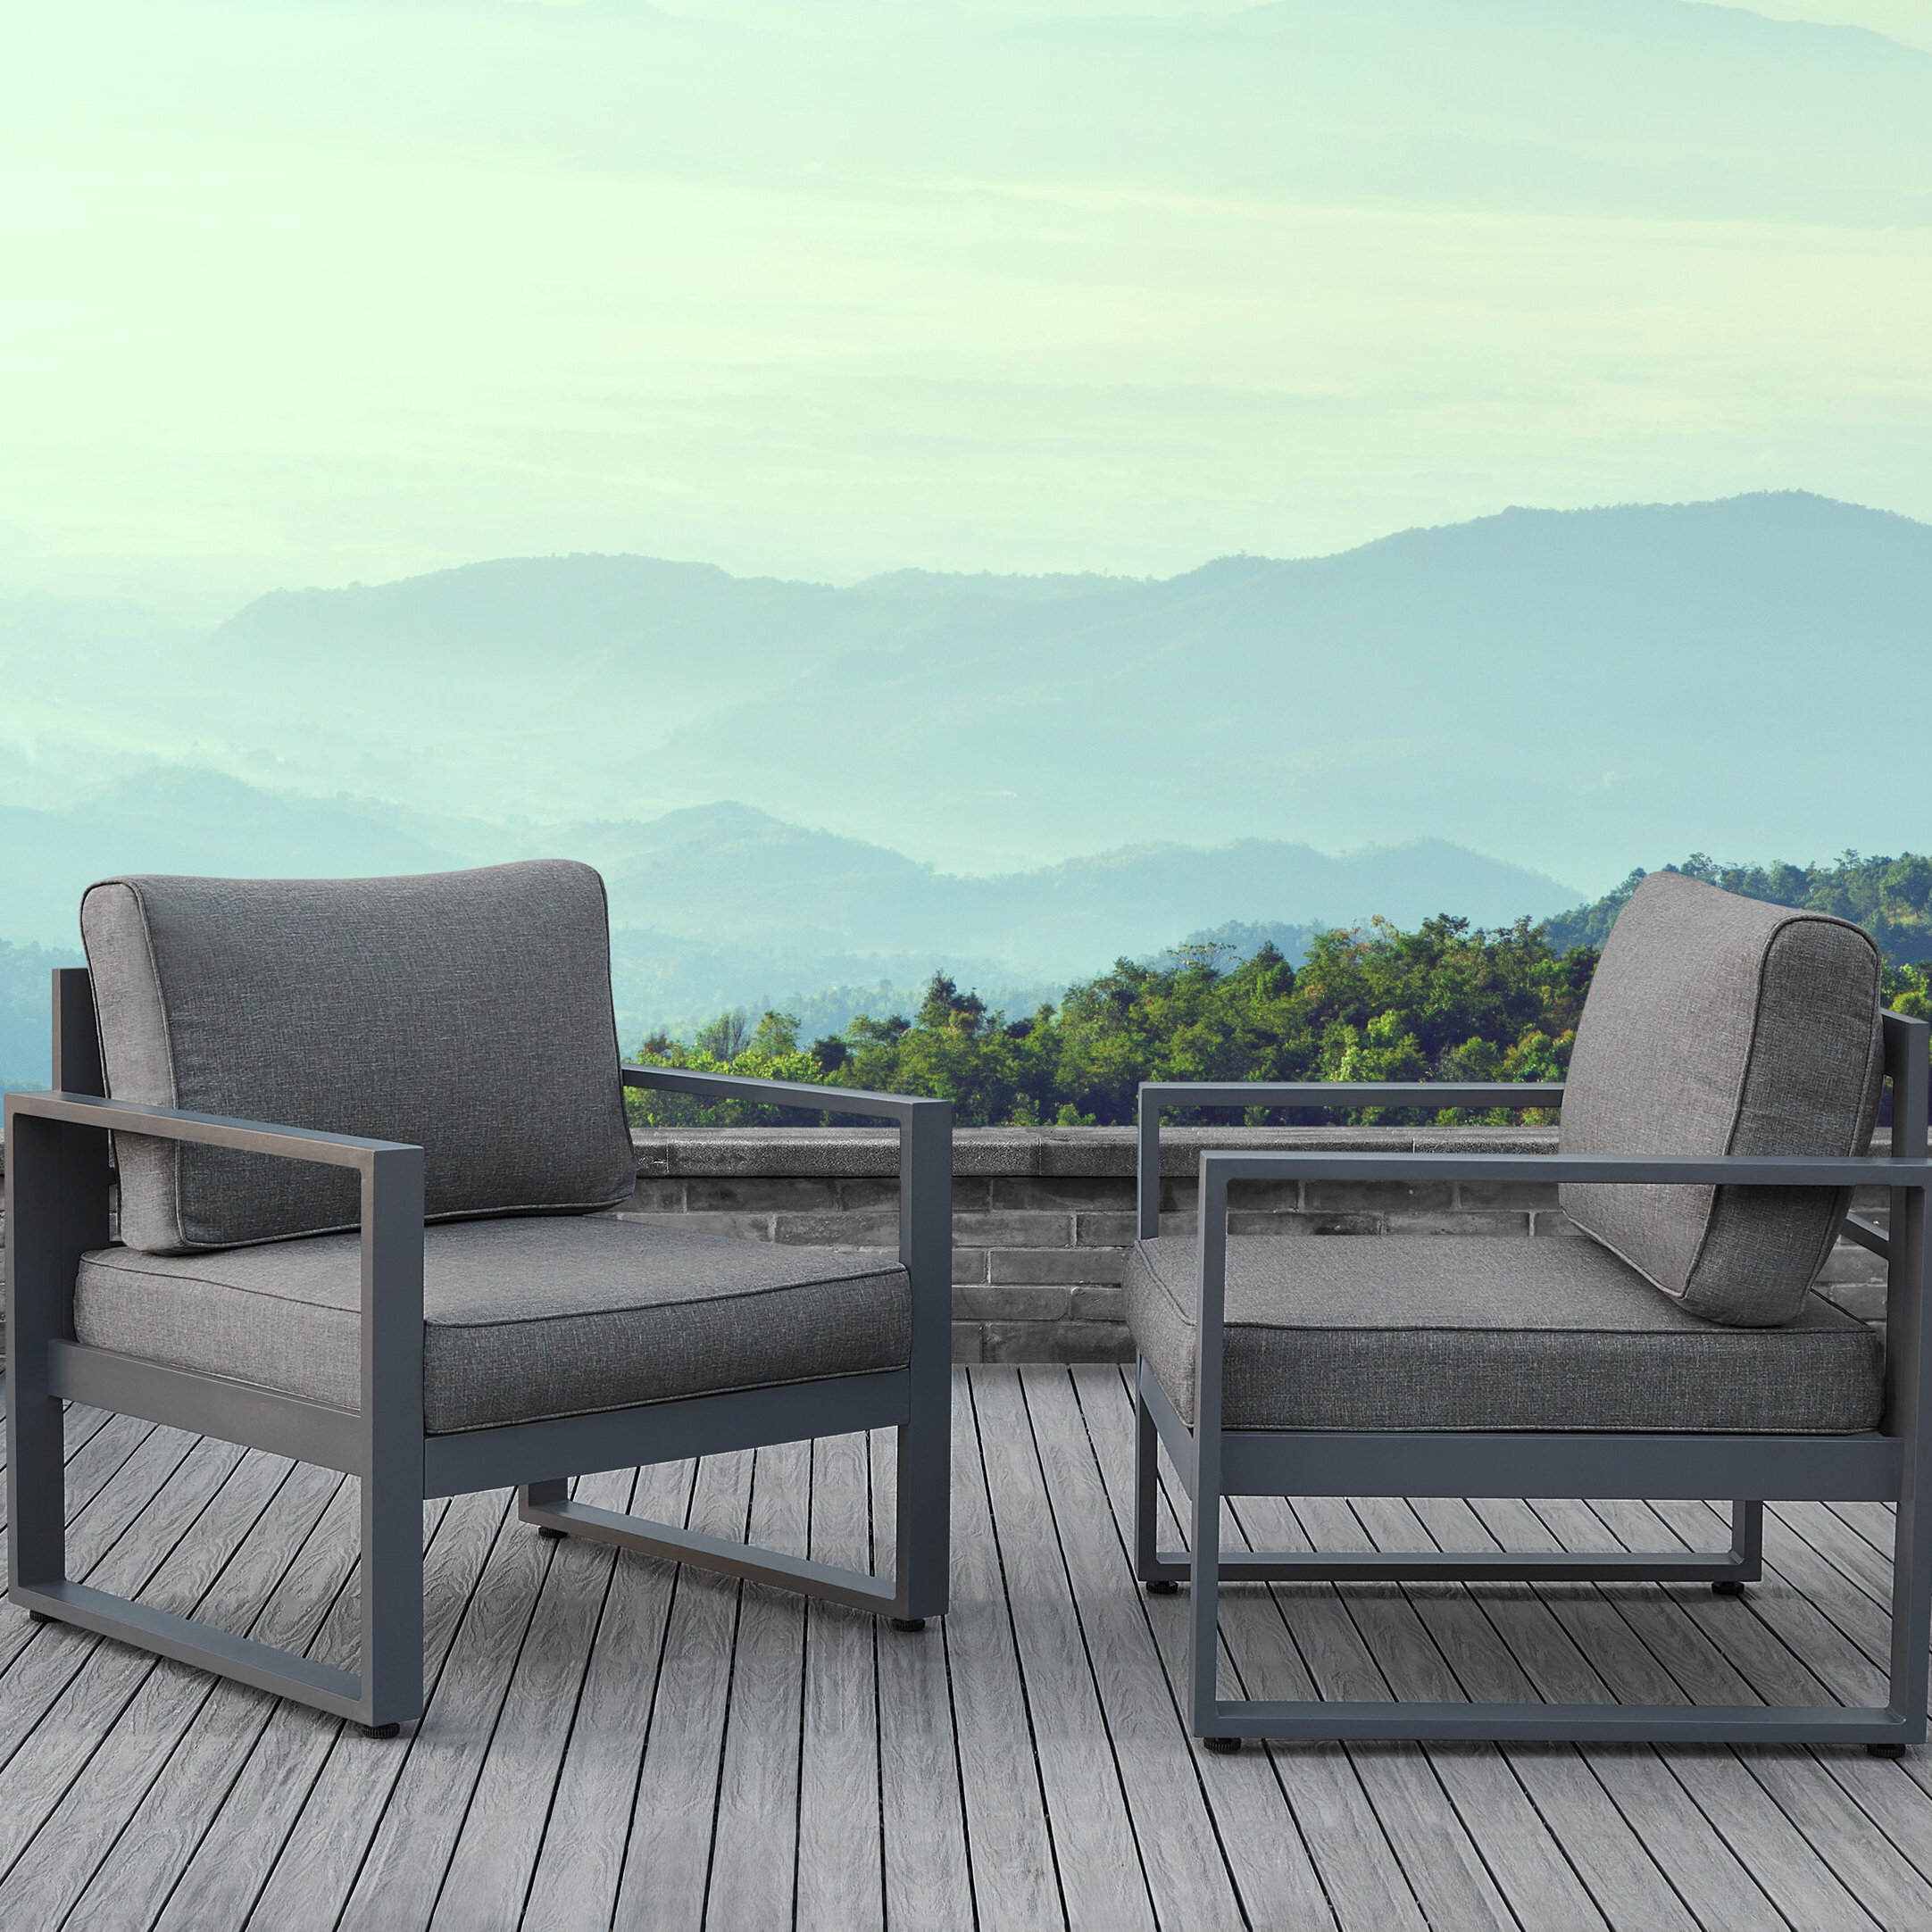 Newest O'kean Teak Patio Sofas With Cushions For Baltic Patio Chair With Cushion (View 12 of 25)